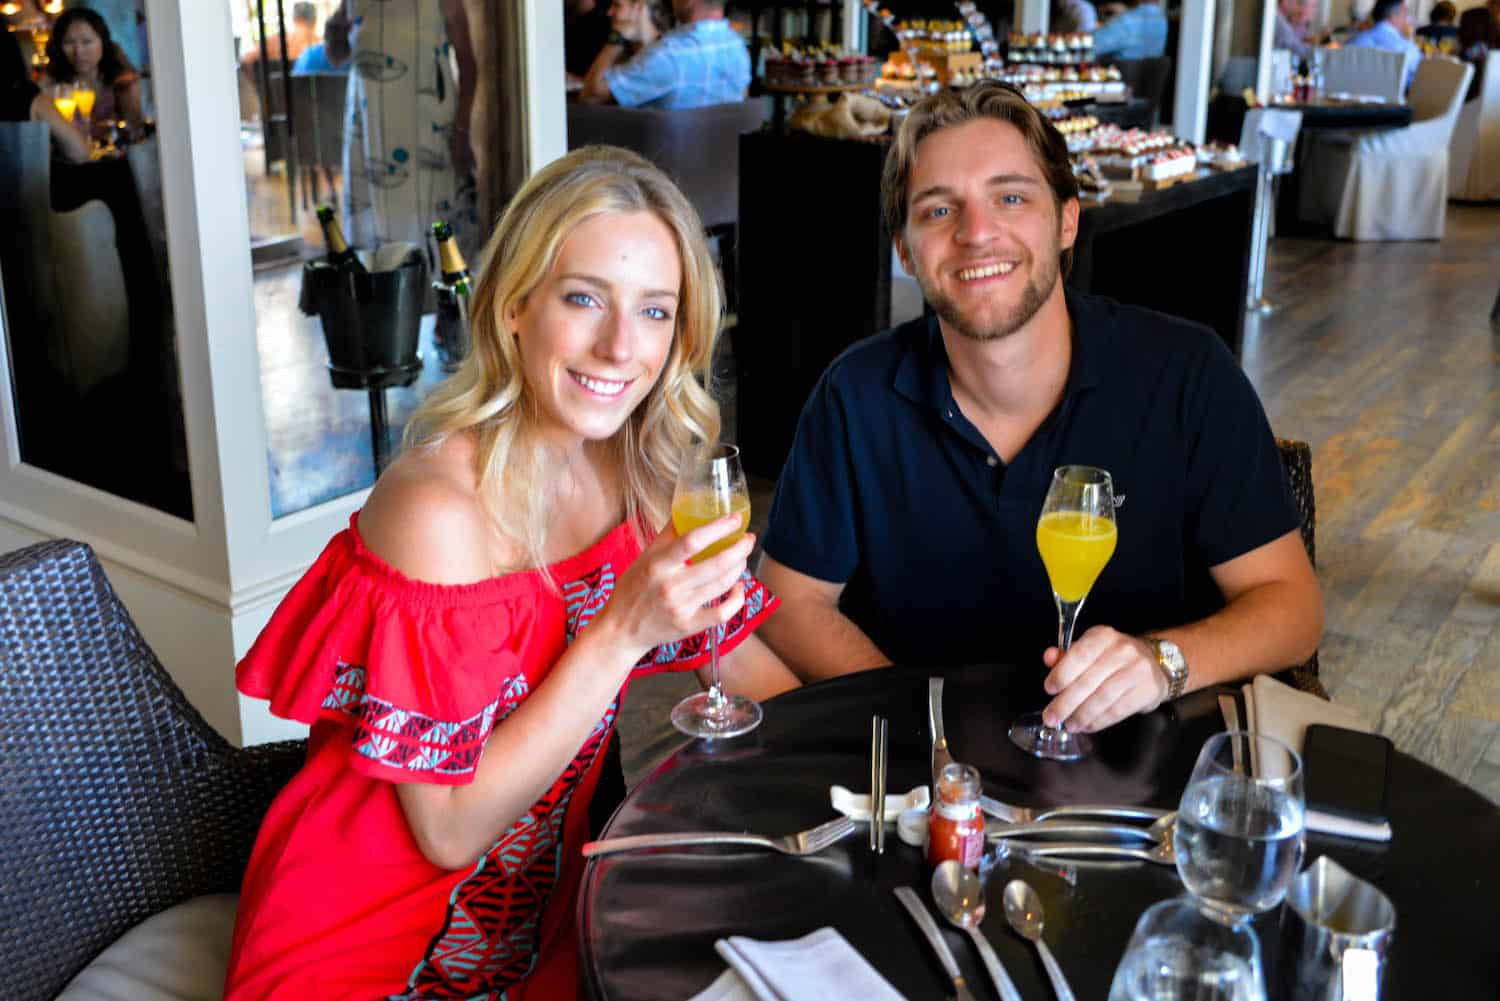 Ritz-Carlton Grand Cayman Champagne Brunch